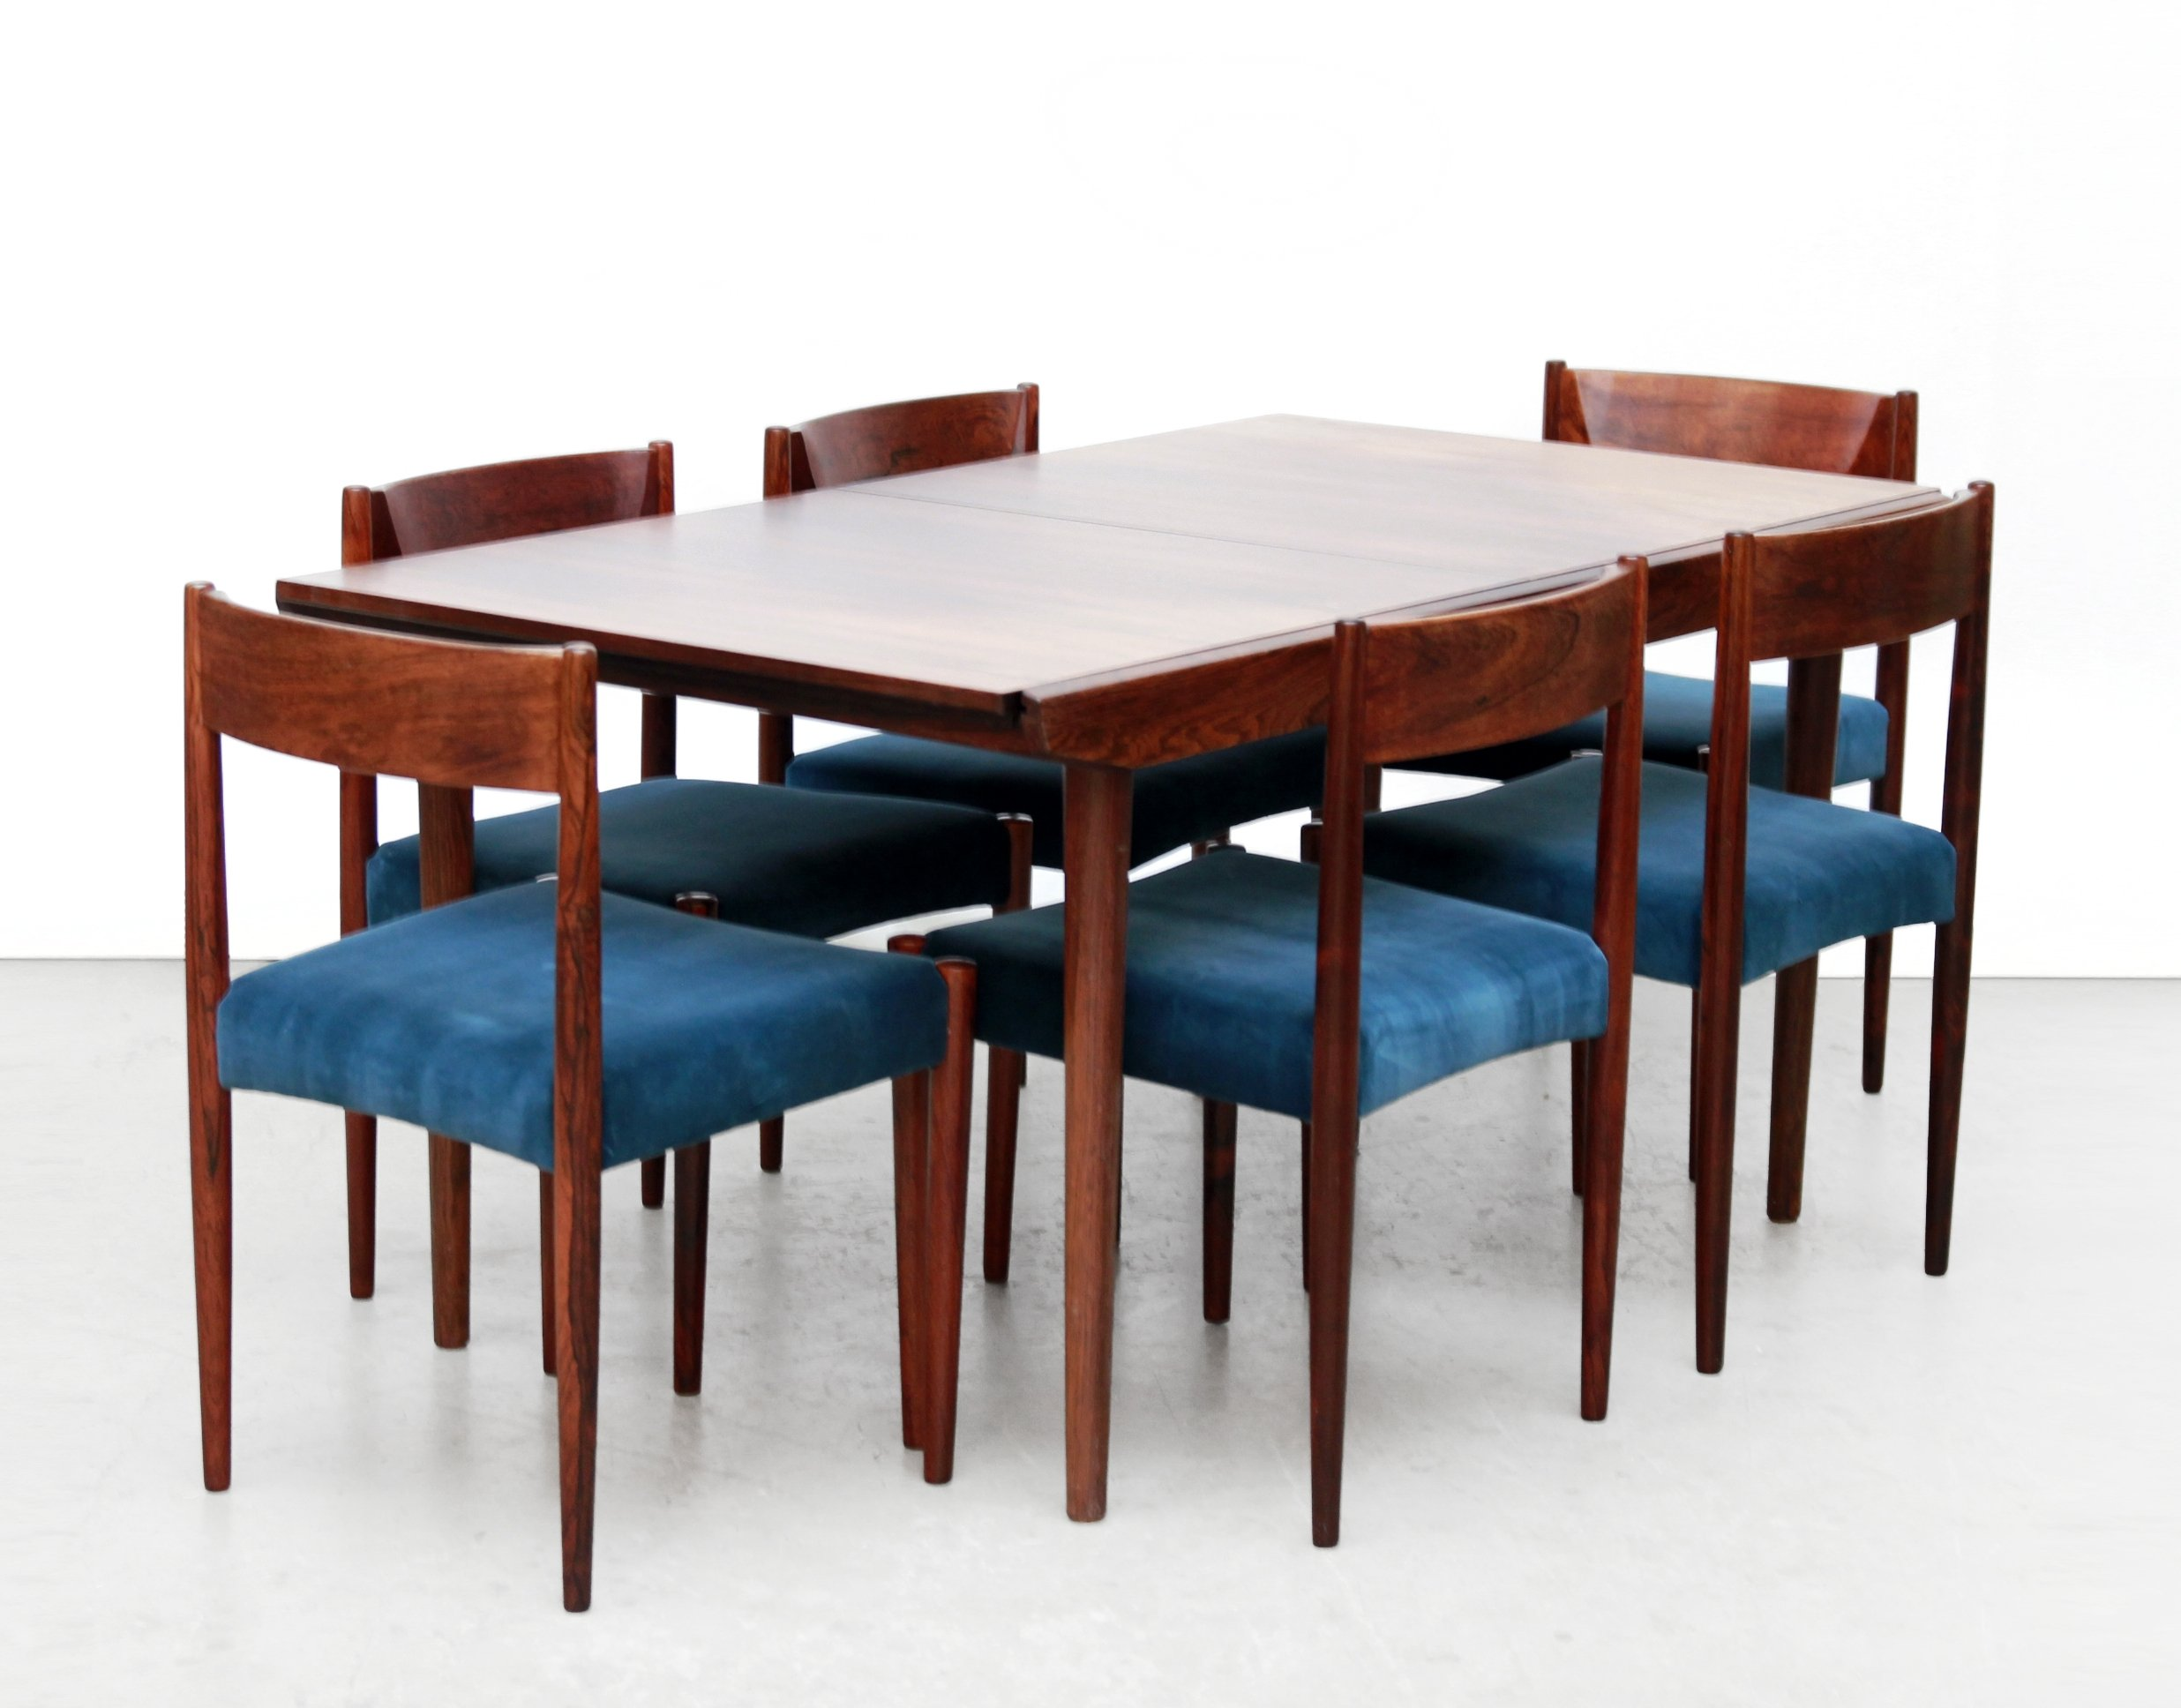 Rosewood Dining Room Set With 6 Chairs Extendable Table